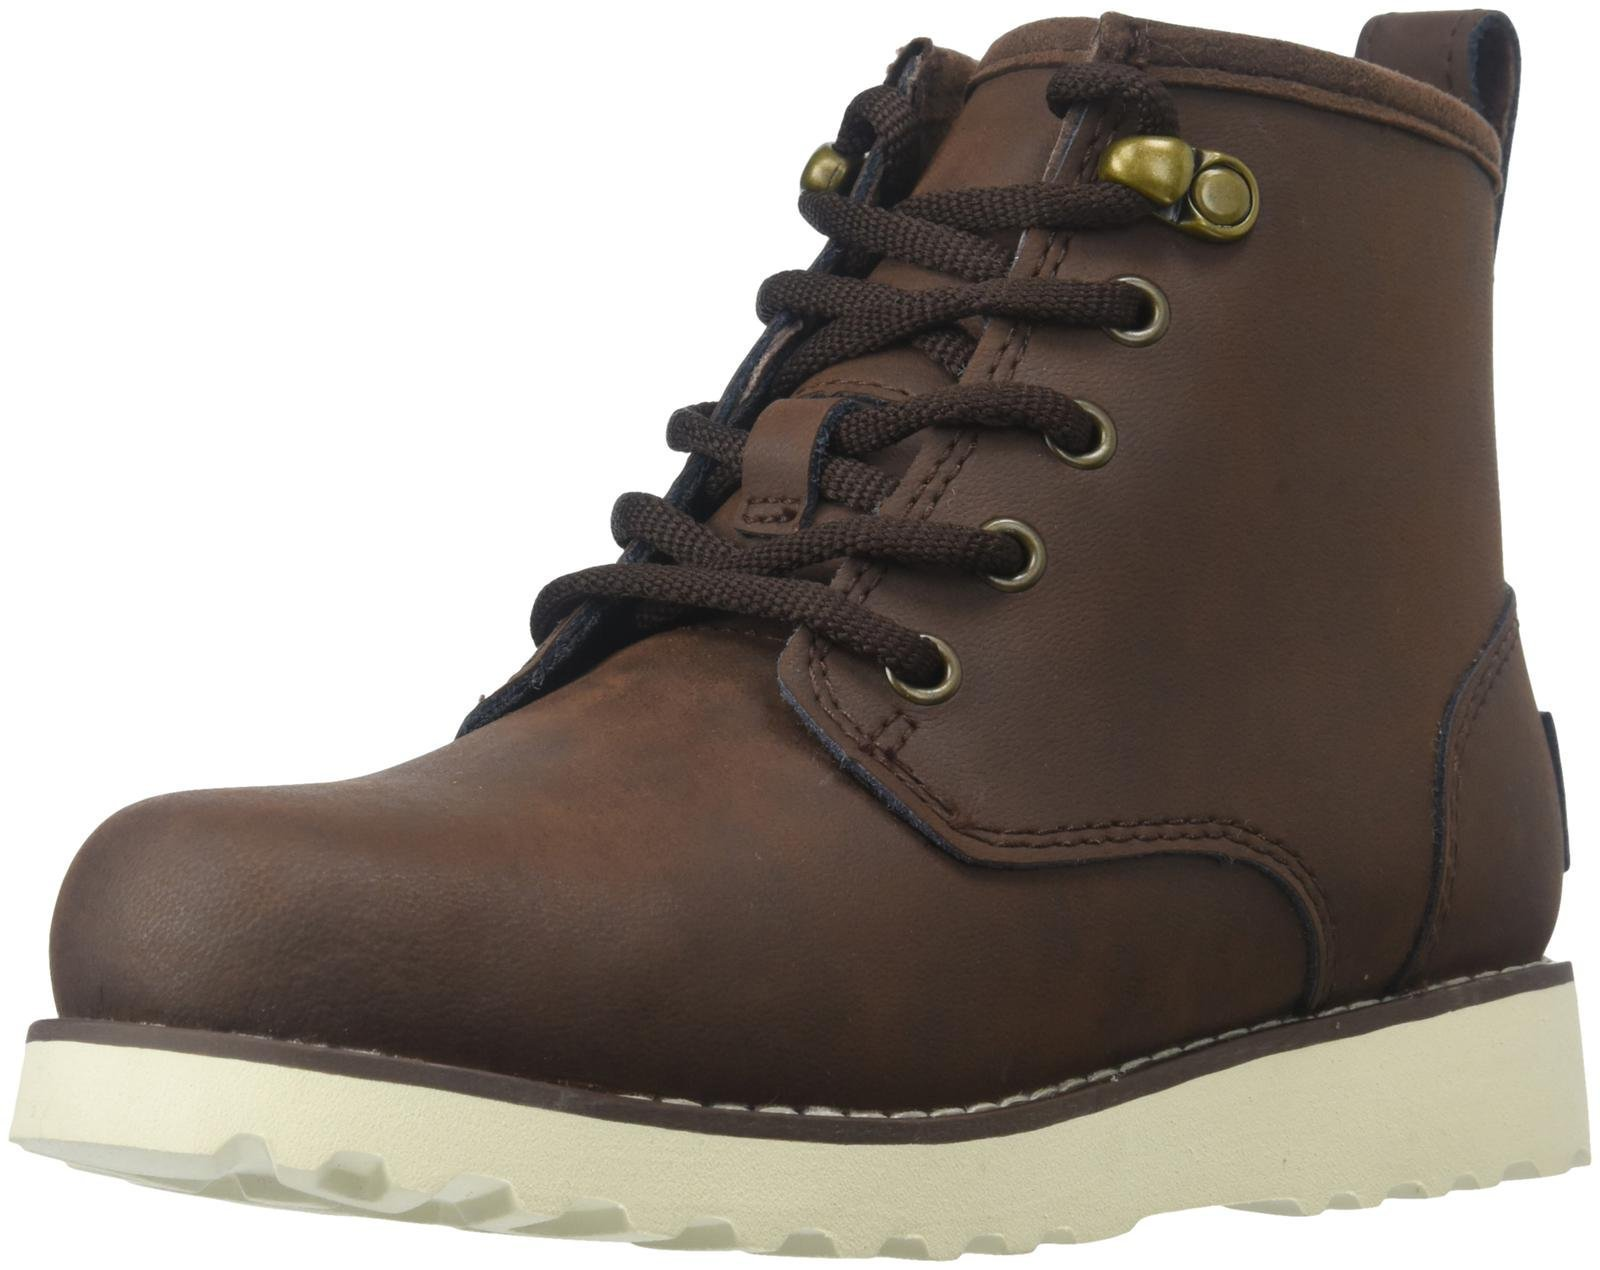 UGG Unisex Maple Lace Up Boot, Mahogany, 11 M US Toddler by UGG